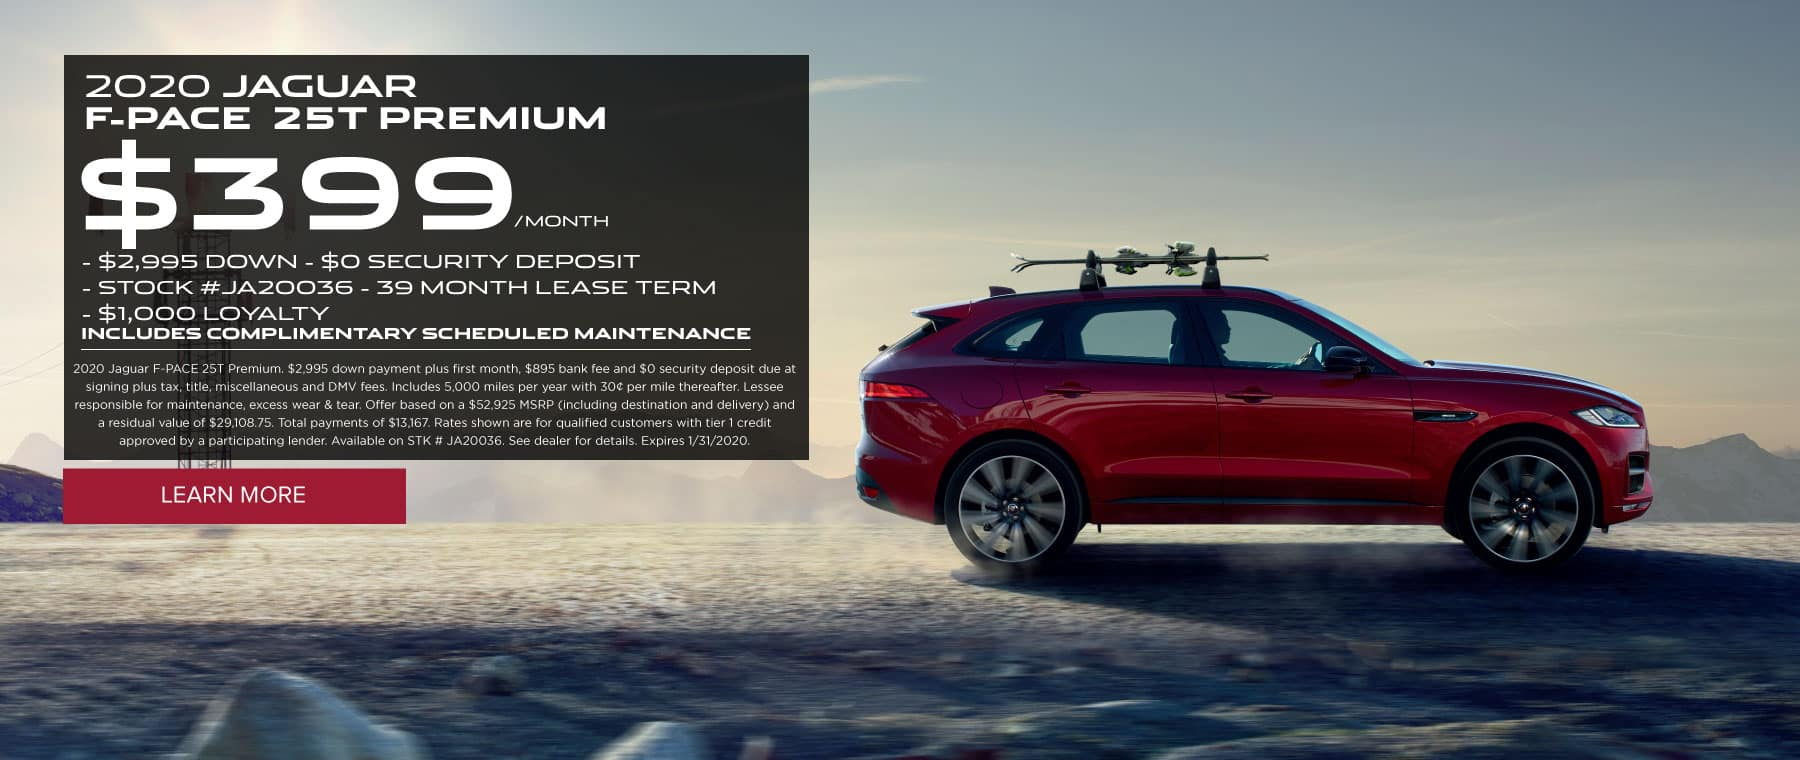 2020 JAGUAR  F-PACE  25T PREMIUM $399/MONTH $2,995 DOWN  $0 SECURITY DEPOSIT STOCK #JA20036 - 39 MONTH LEASE TERM $1,000 LOYALTY INCLUDES COMPLIMENTARY SCHEDULED MAINTENANCE 2020 Jaguar F-PACE 25T Premium. $2,995 down payment plus first month, $895 bank fee and $0 security deposit due at signing plus tax, title, miscellaneous and DMV fees. Includes 5,000 miles per year with 30¢ per mile thereafter. Lessee responsible for maintenance, excess wear & tear. Offer based on a $52,925 MSRP (including destination and delivery) and a residual value of $29,108.75. Total payments of $13,167. Rates shown are for qualified customers with tier 1 credit approved by a participating lender. Available on STK # JA20036. See dealer for details. Expires 1/31/2020. Click to learn more. Red F-PACE on a desert road.